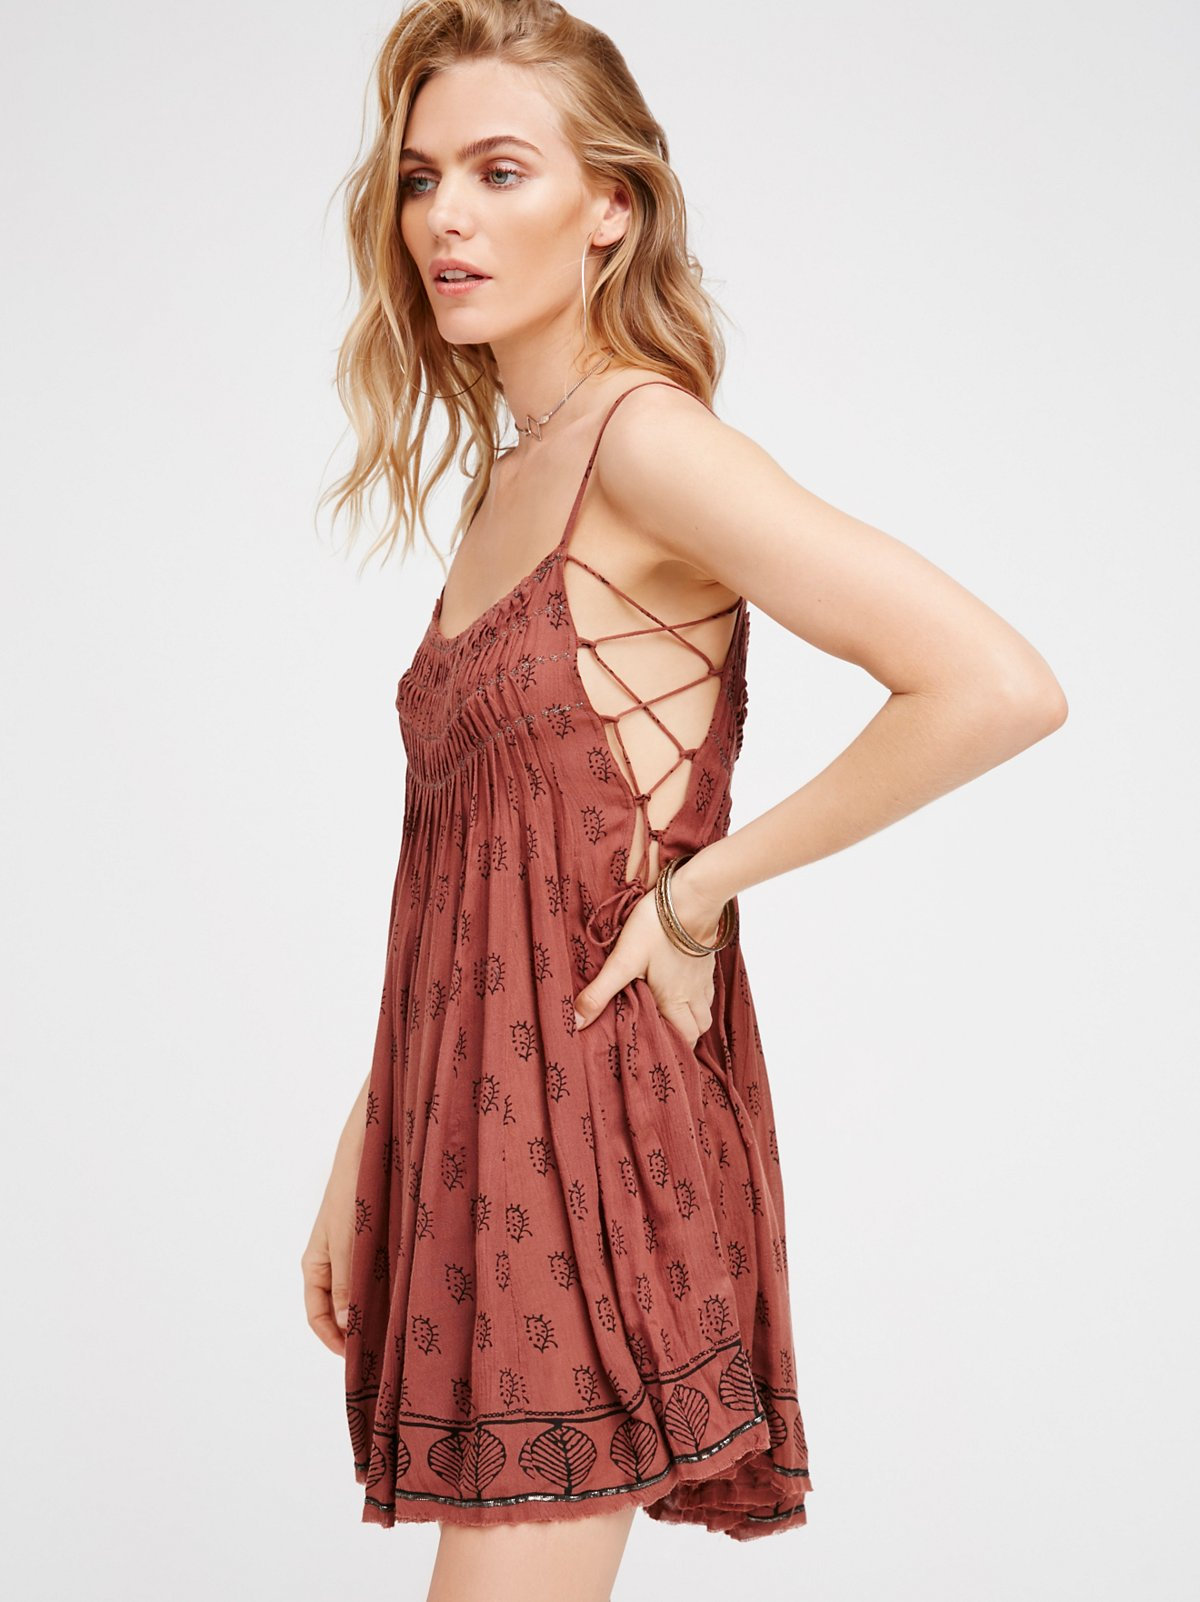 FP One Imperial Pintuck Dress